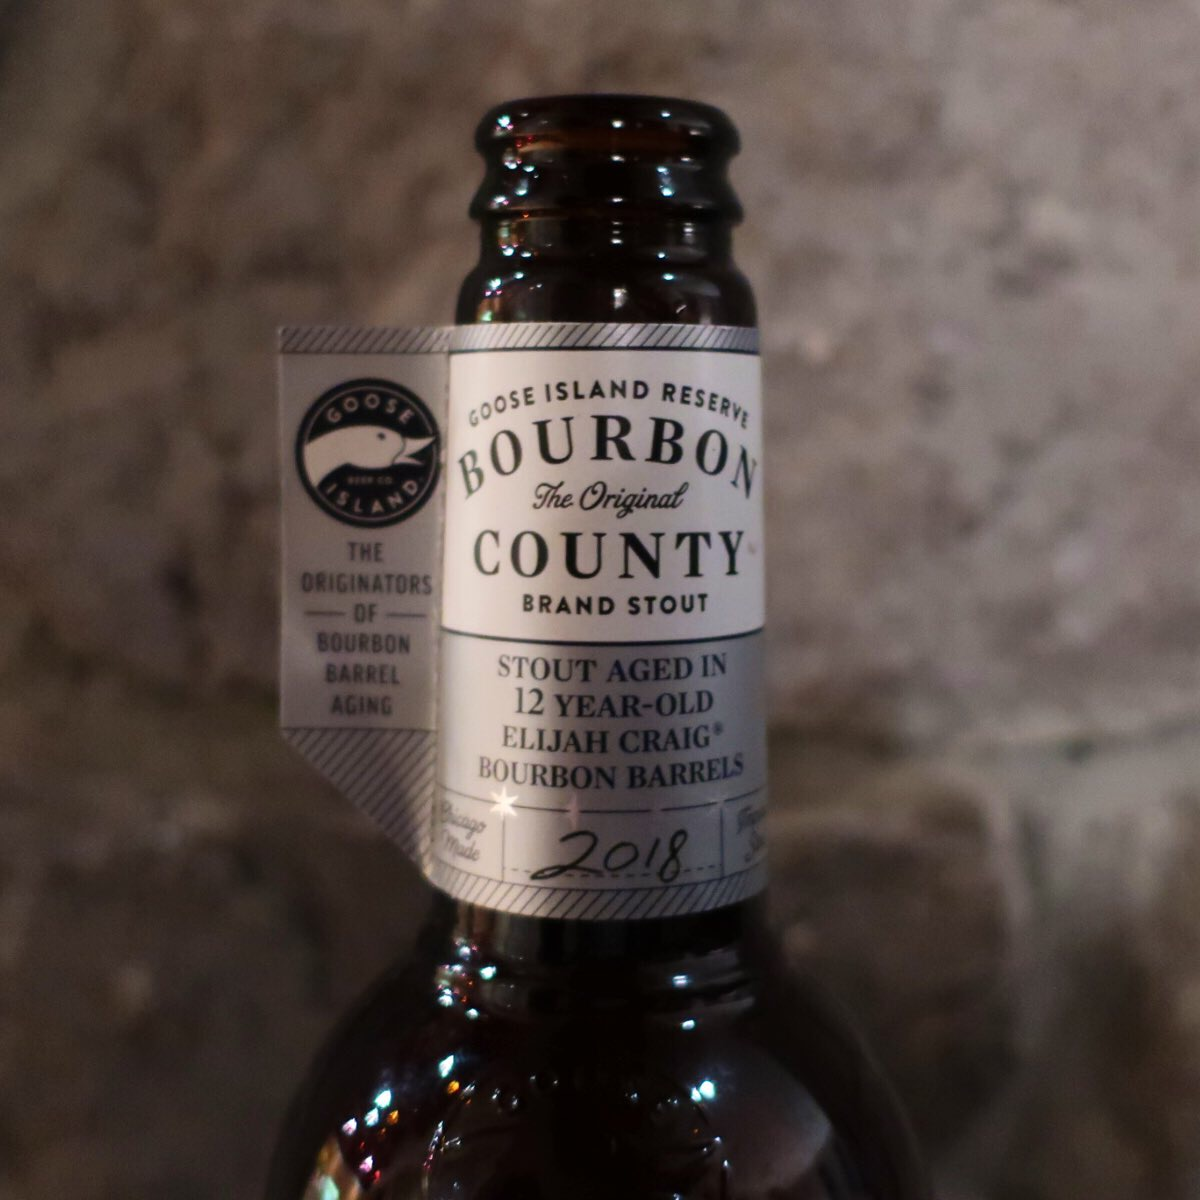 The front of the neck label for Goose Island 2018 Reserve Bourbon County Brand Stout.